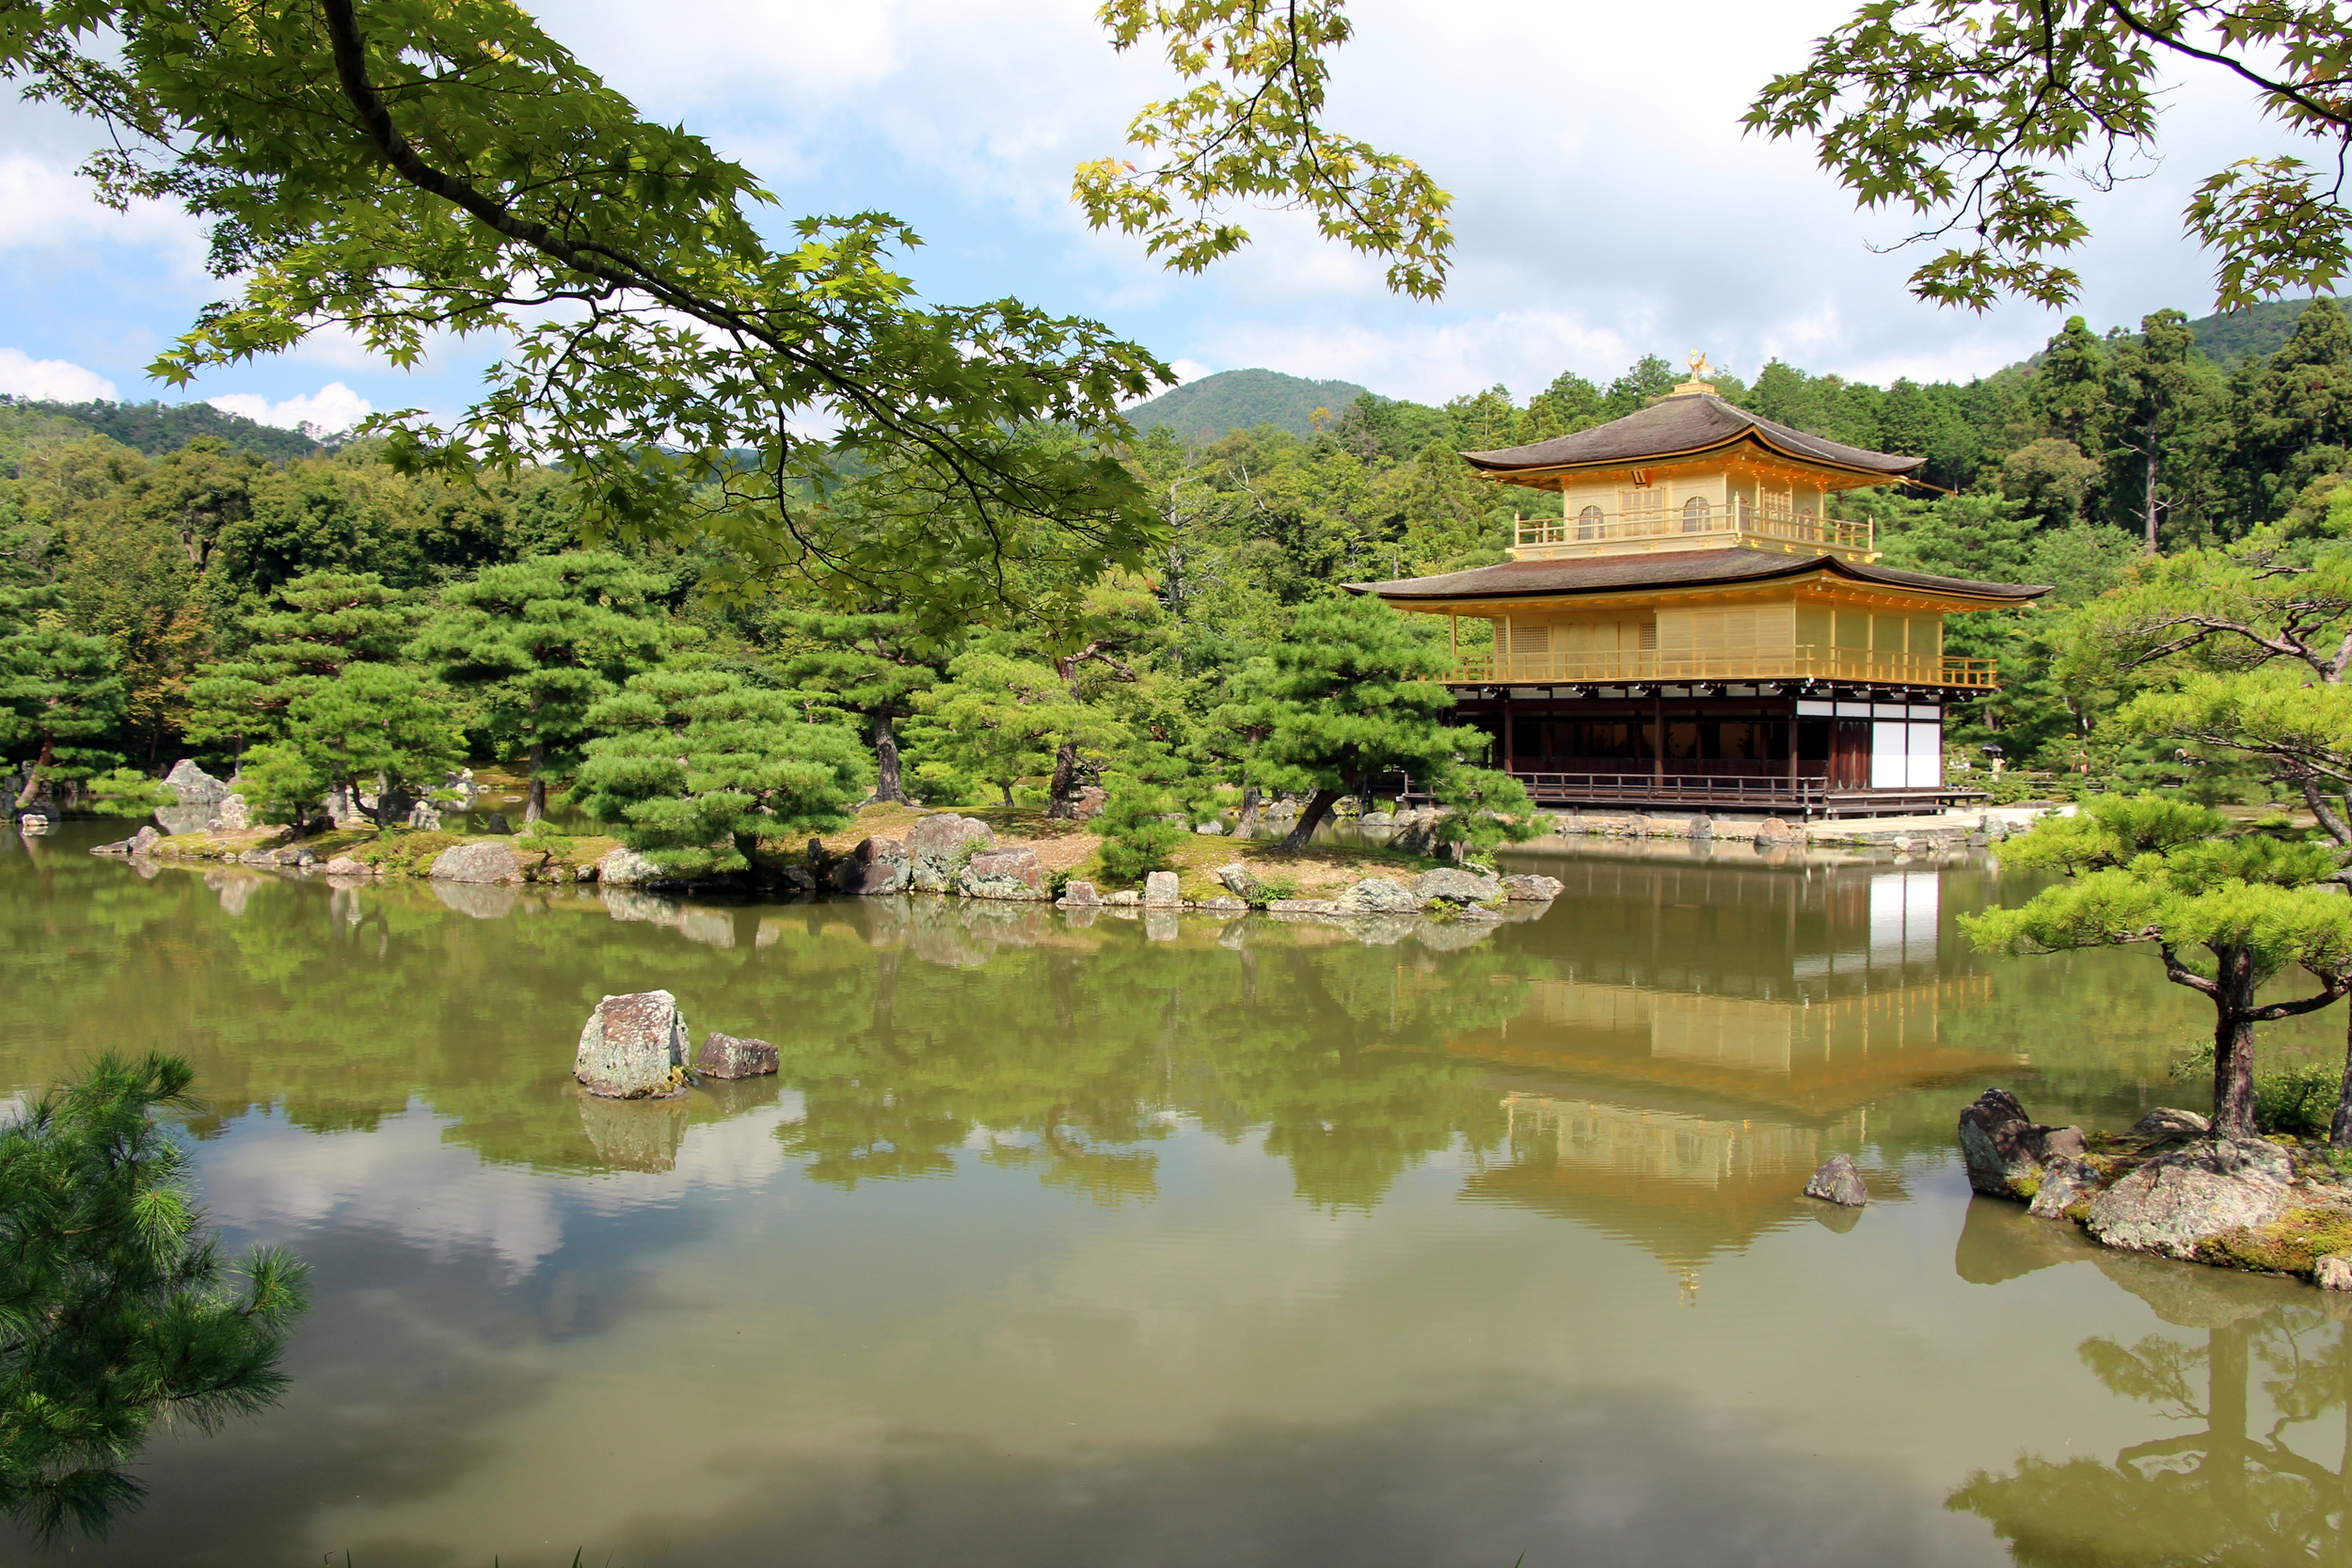 The garden and pond surrounding the Golden Pavilion are hard to capture in photos. The space was absolutely stunning.